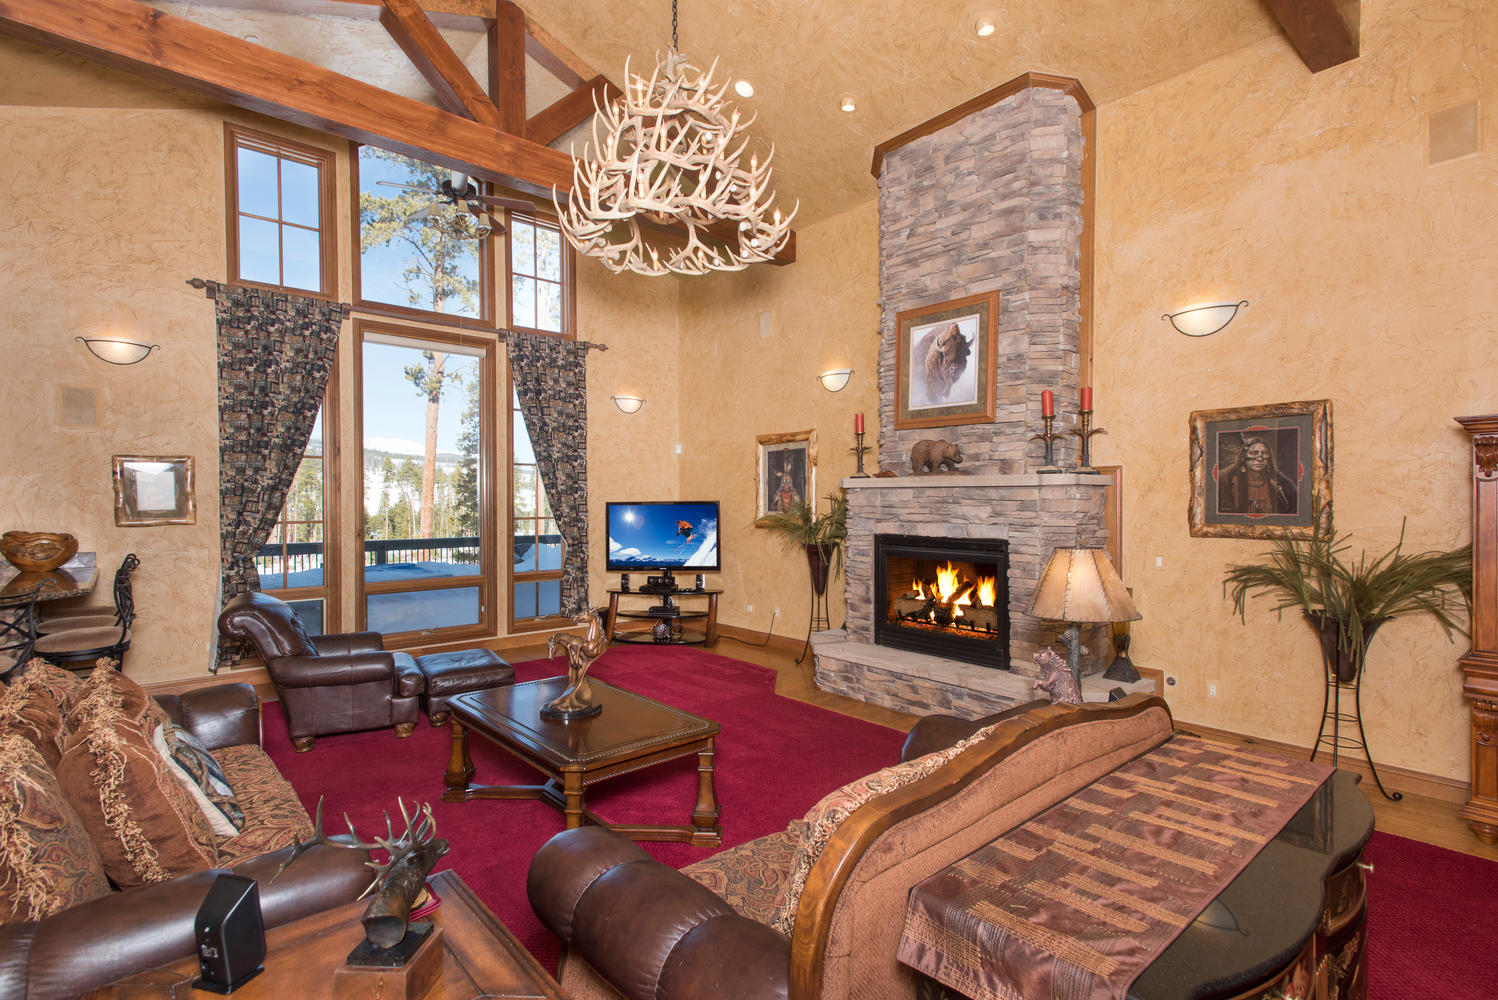 Single Family Home for Active at Golf Course Manor 127 Marks Lane Breckenridge, Colorado 80424 United States